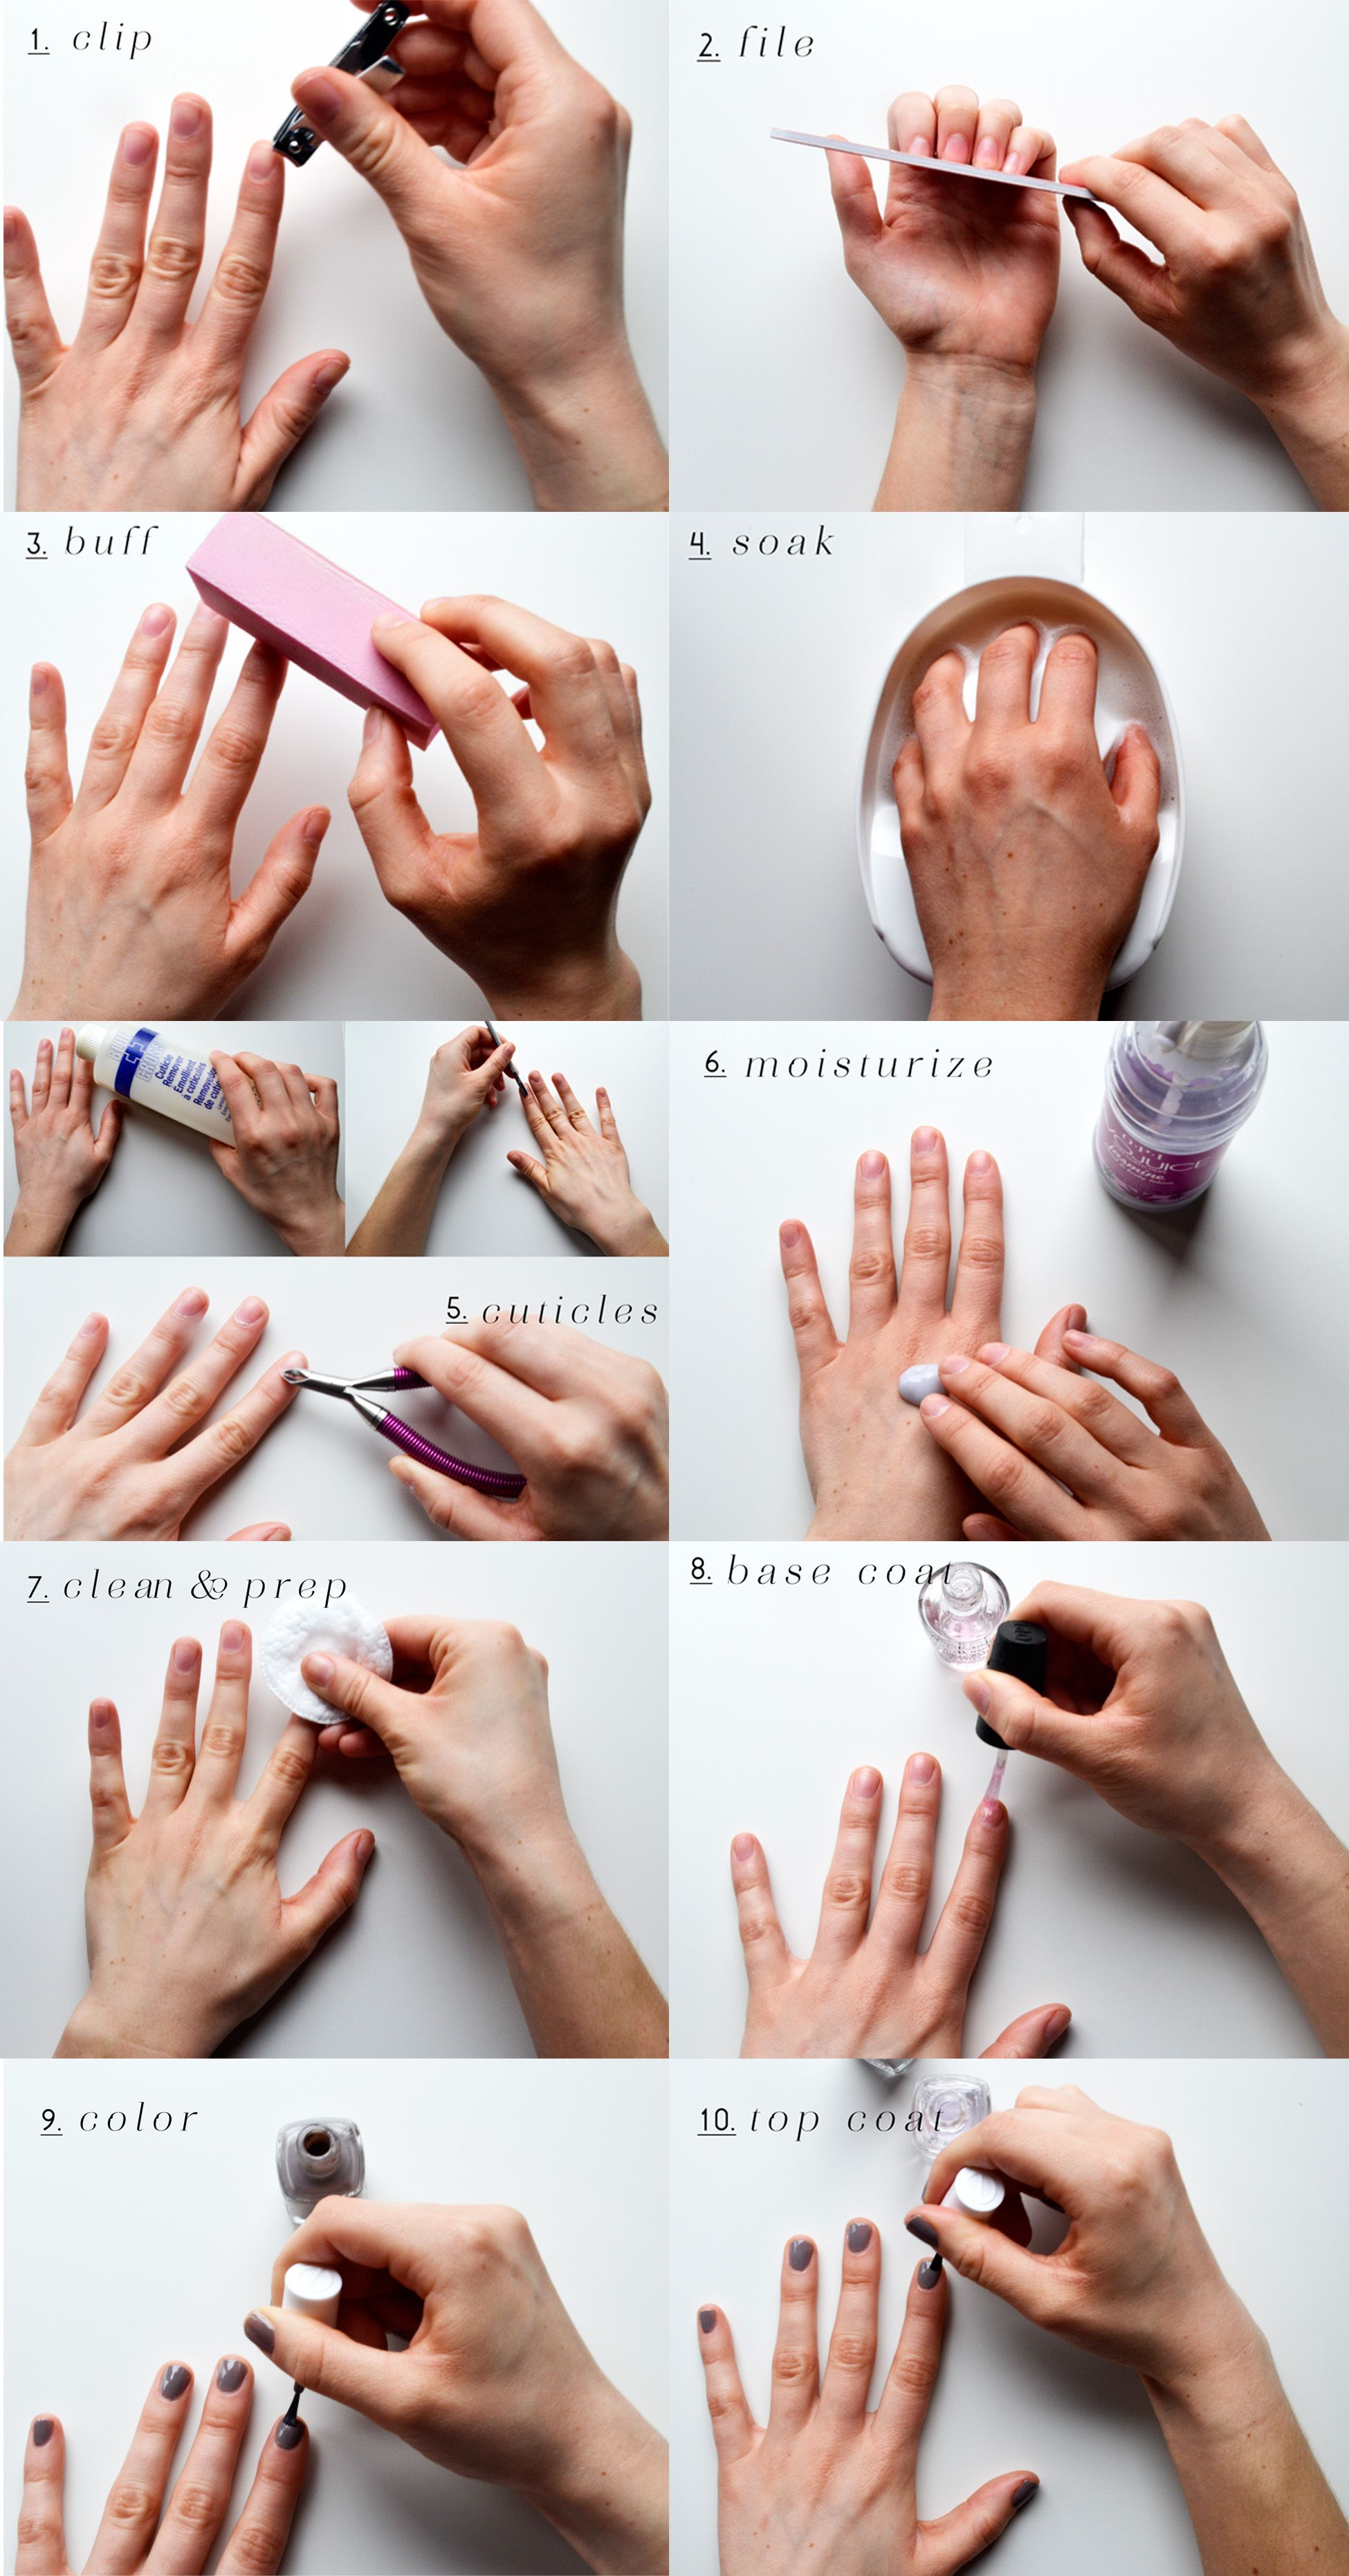 Steps To Follow For A Professional Salon Manicure Manicure Manicure And Pedicure Diy Pedicure